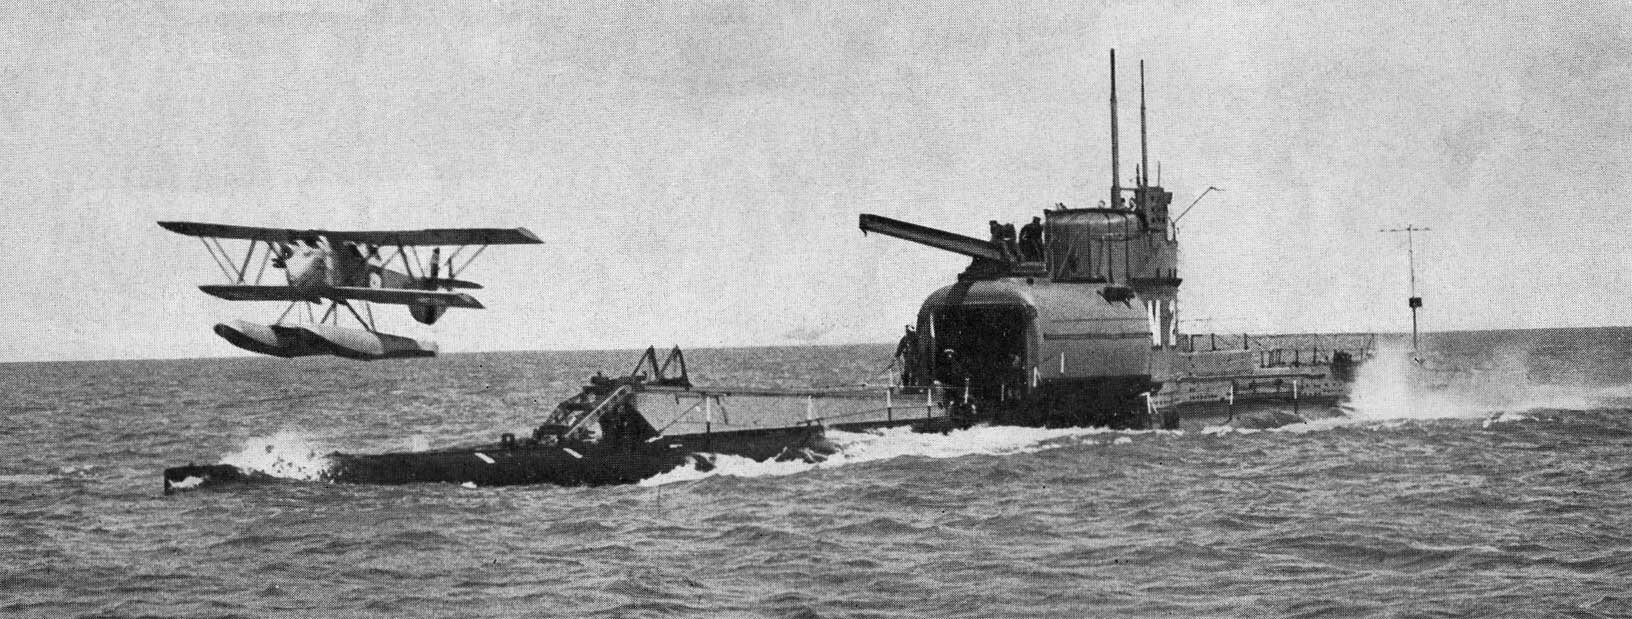 British_Submarine_HMS_M2.jpg